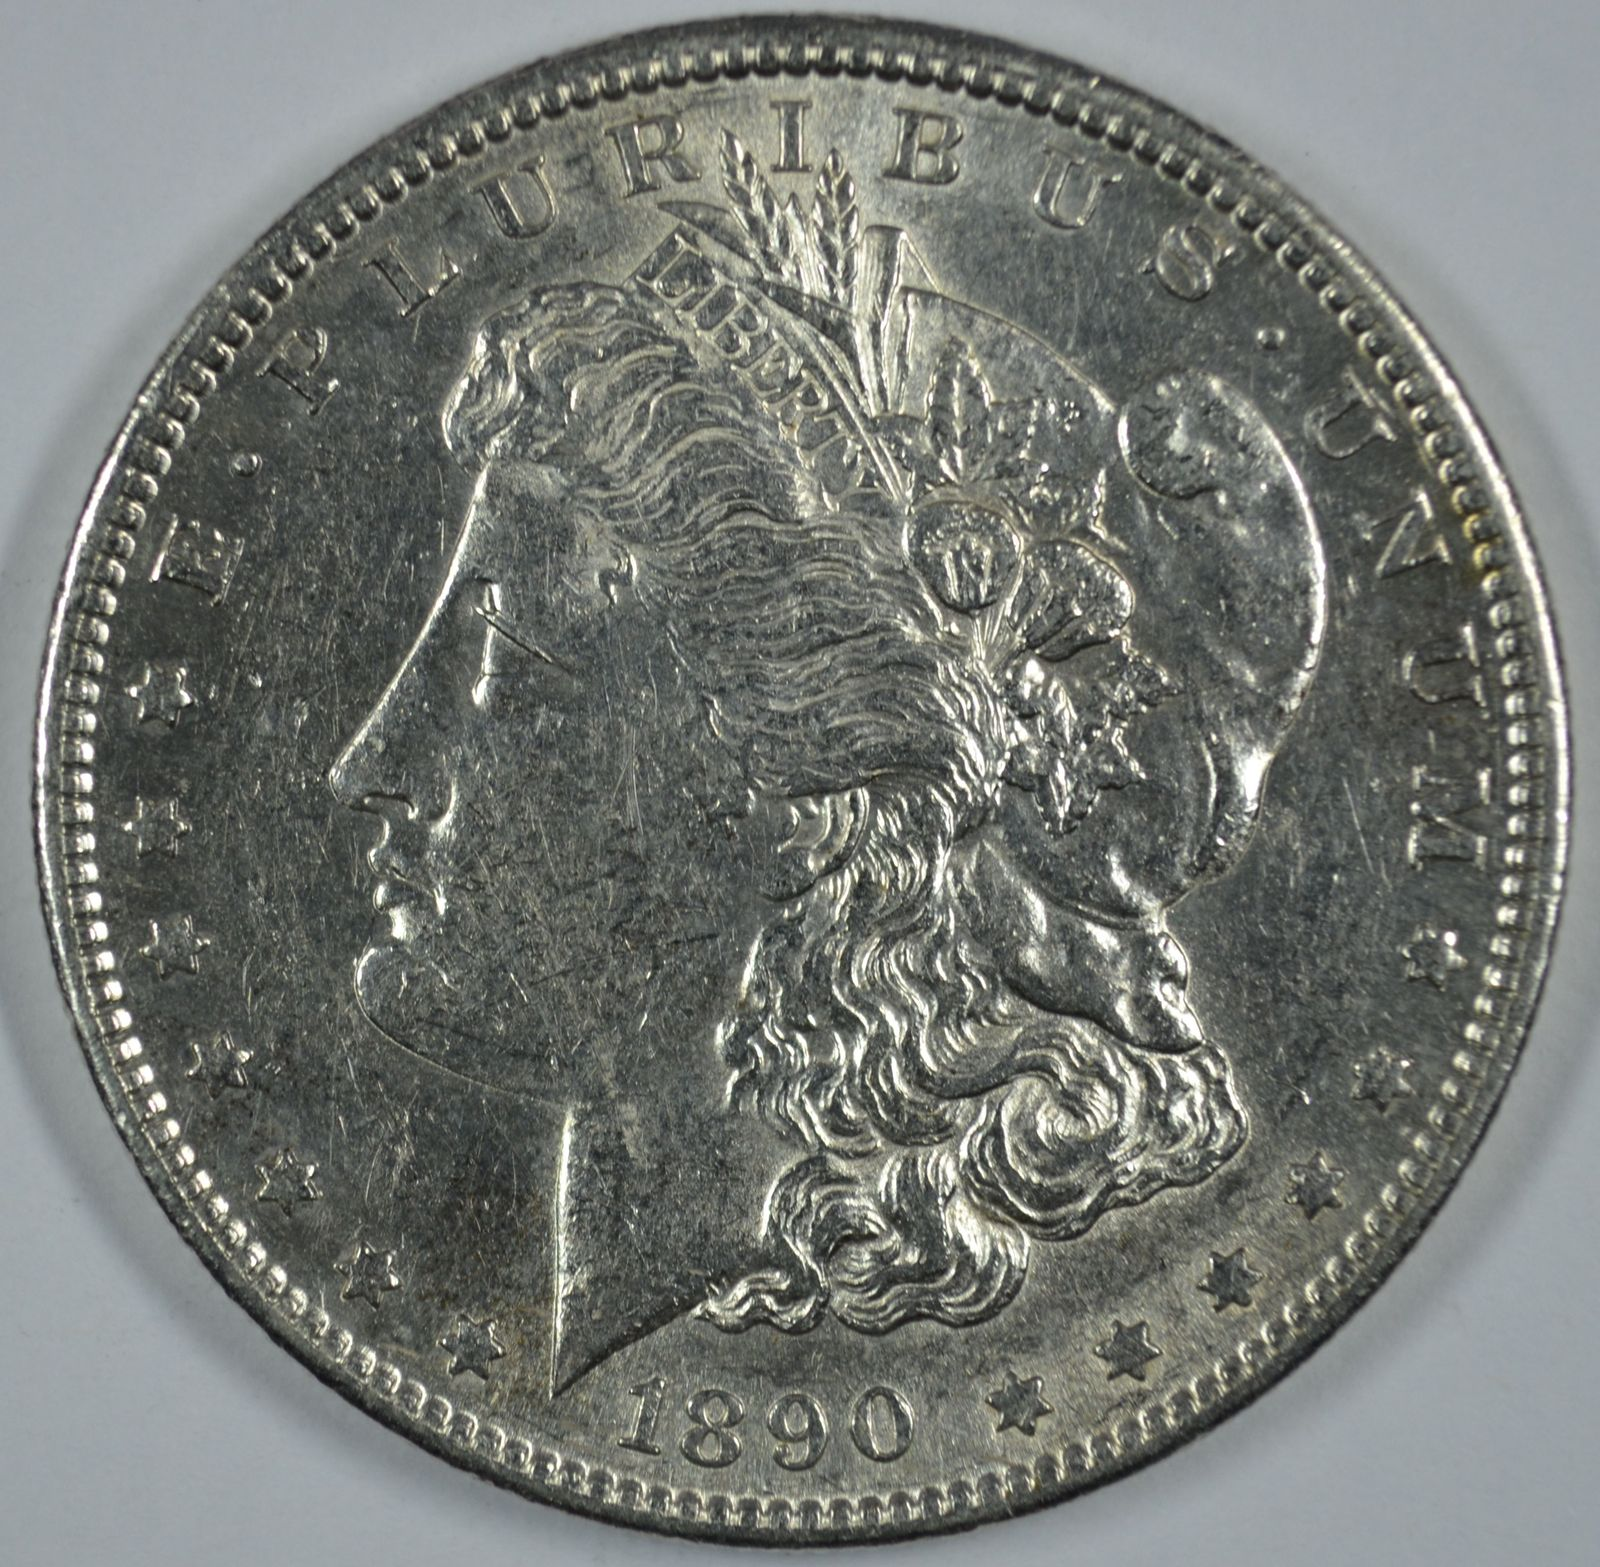 Primary image for 1890 S Morgan circulated silver dollar XF details